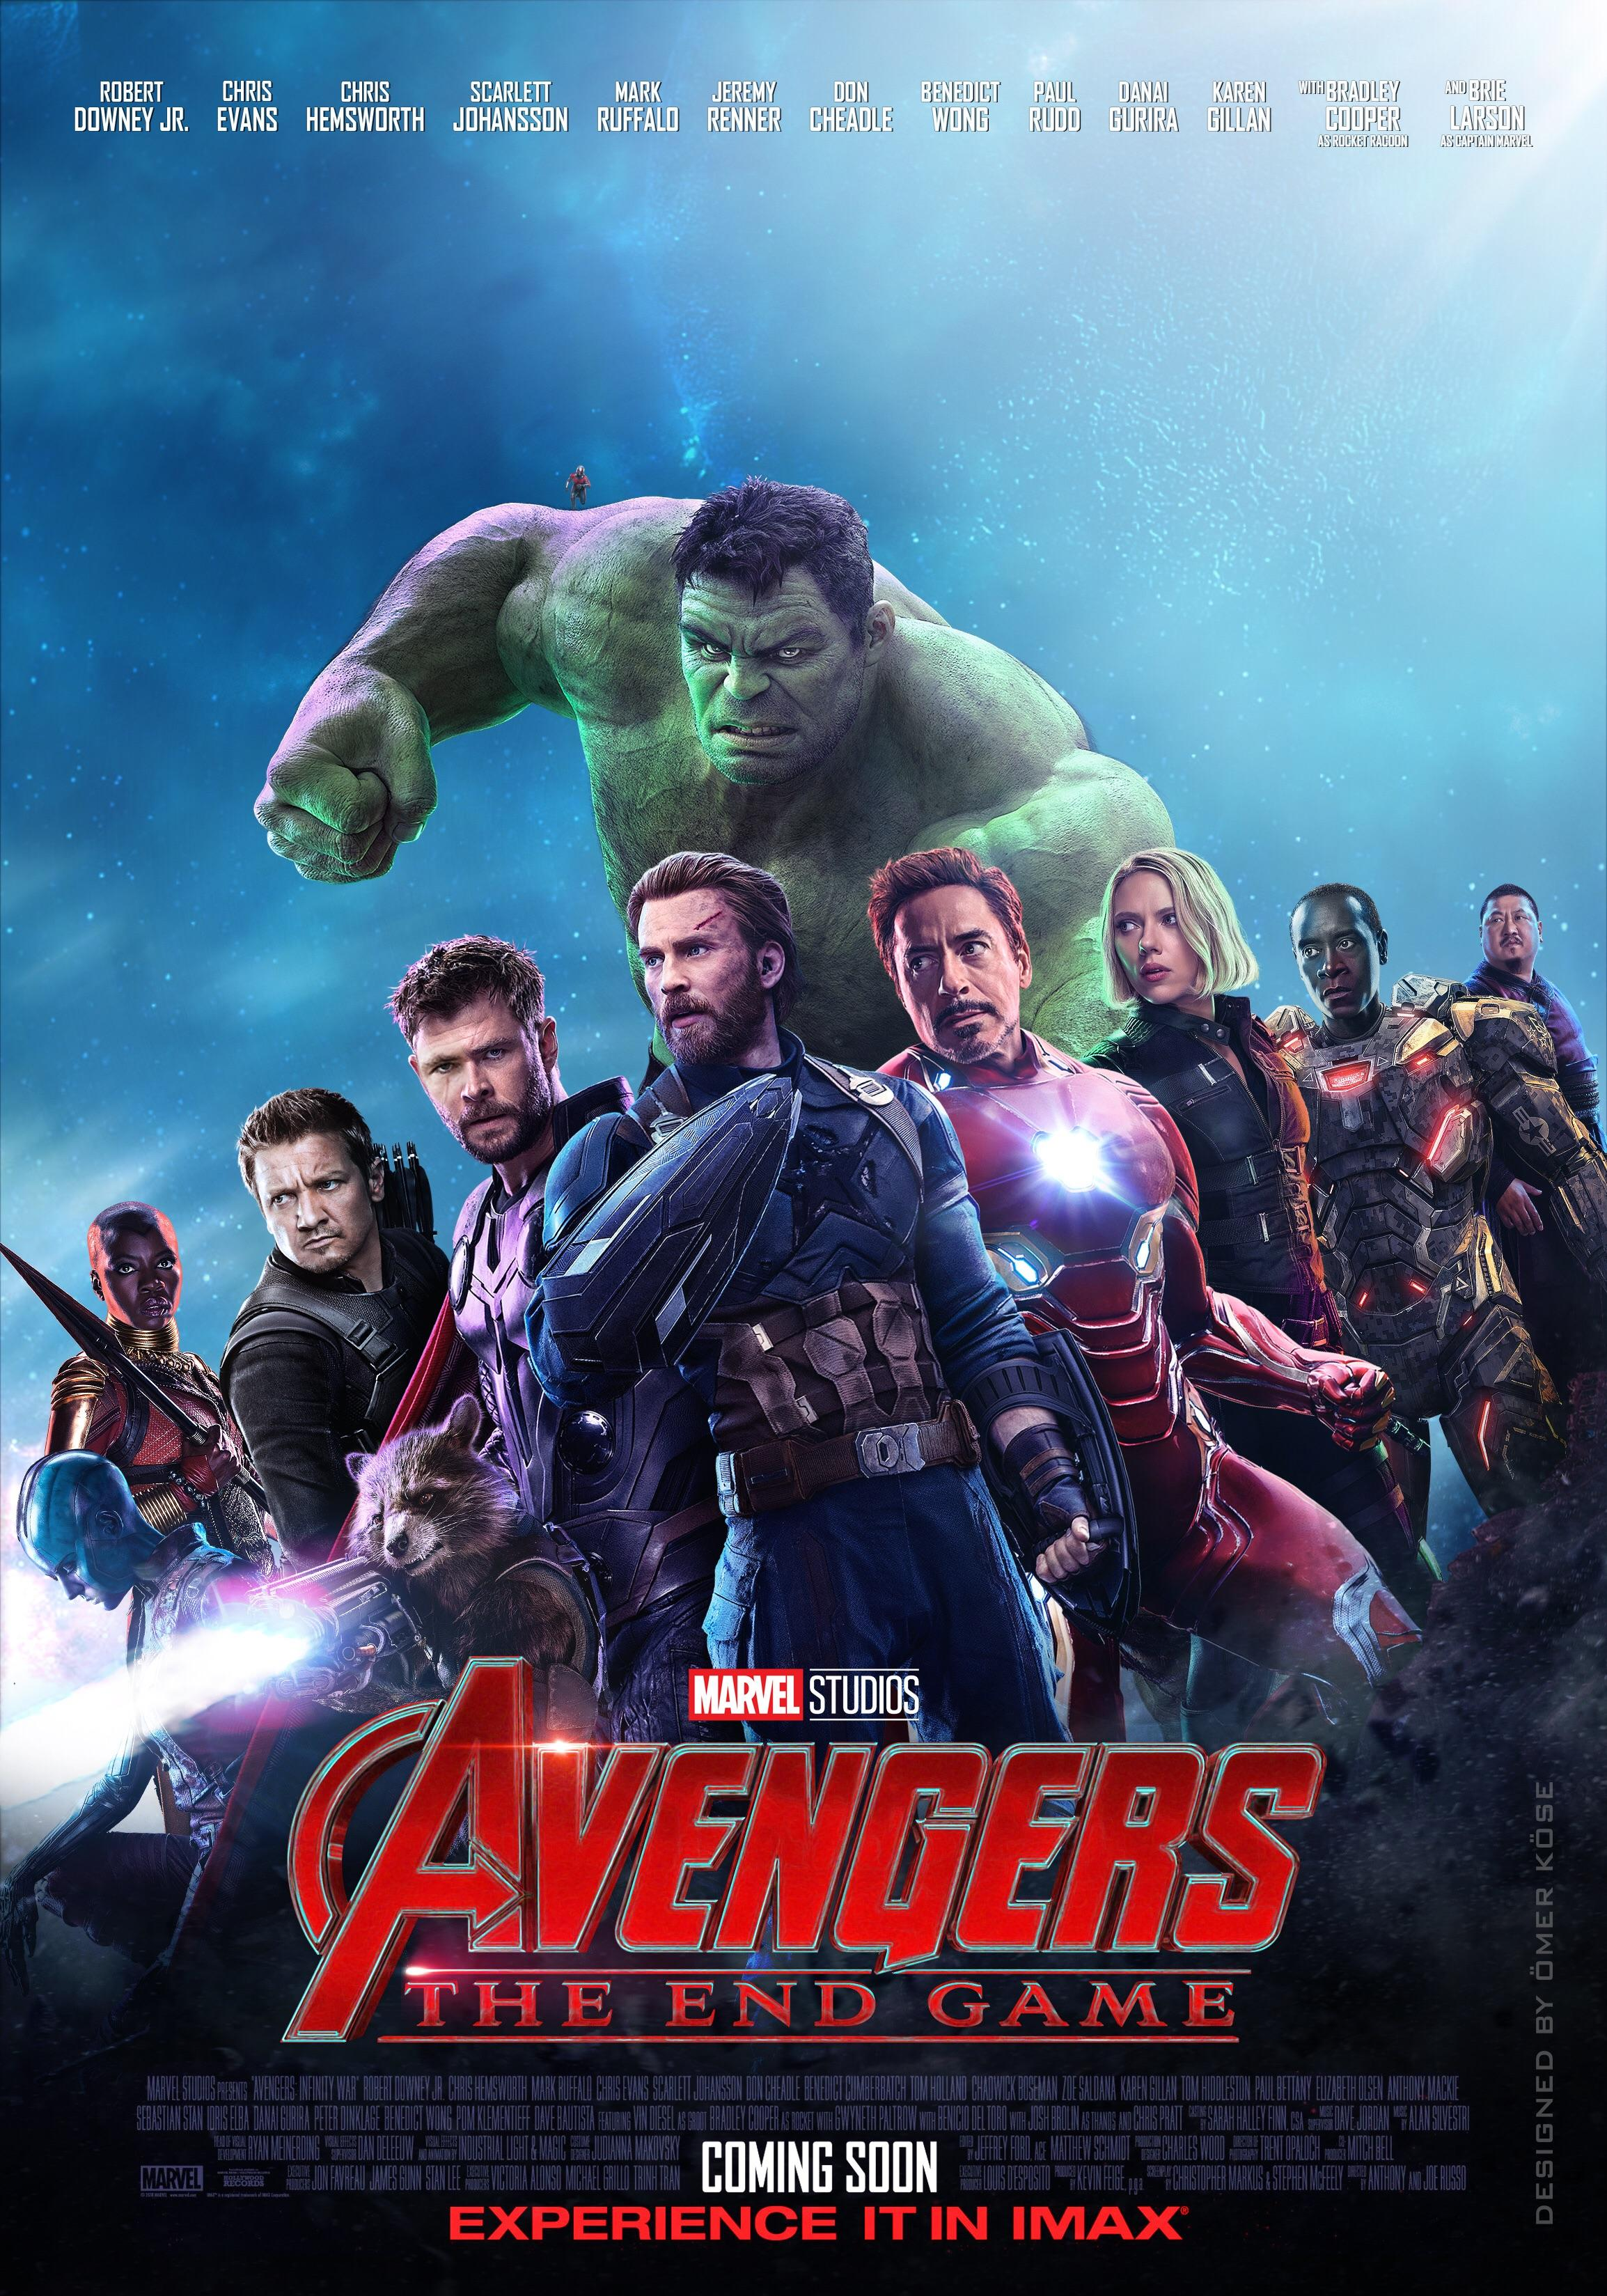 its the end game for earths mightiest heroes on avengers